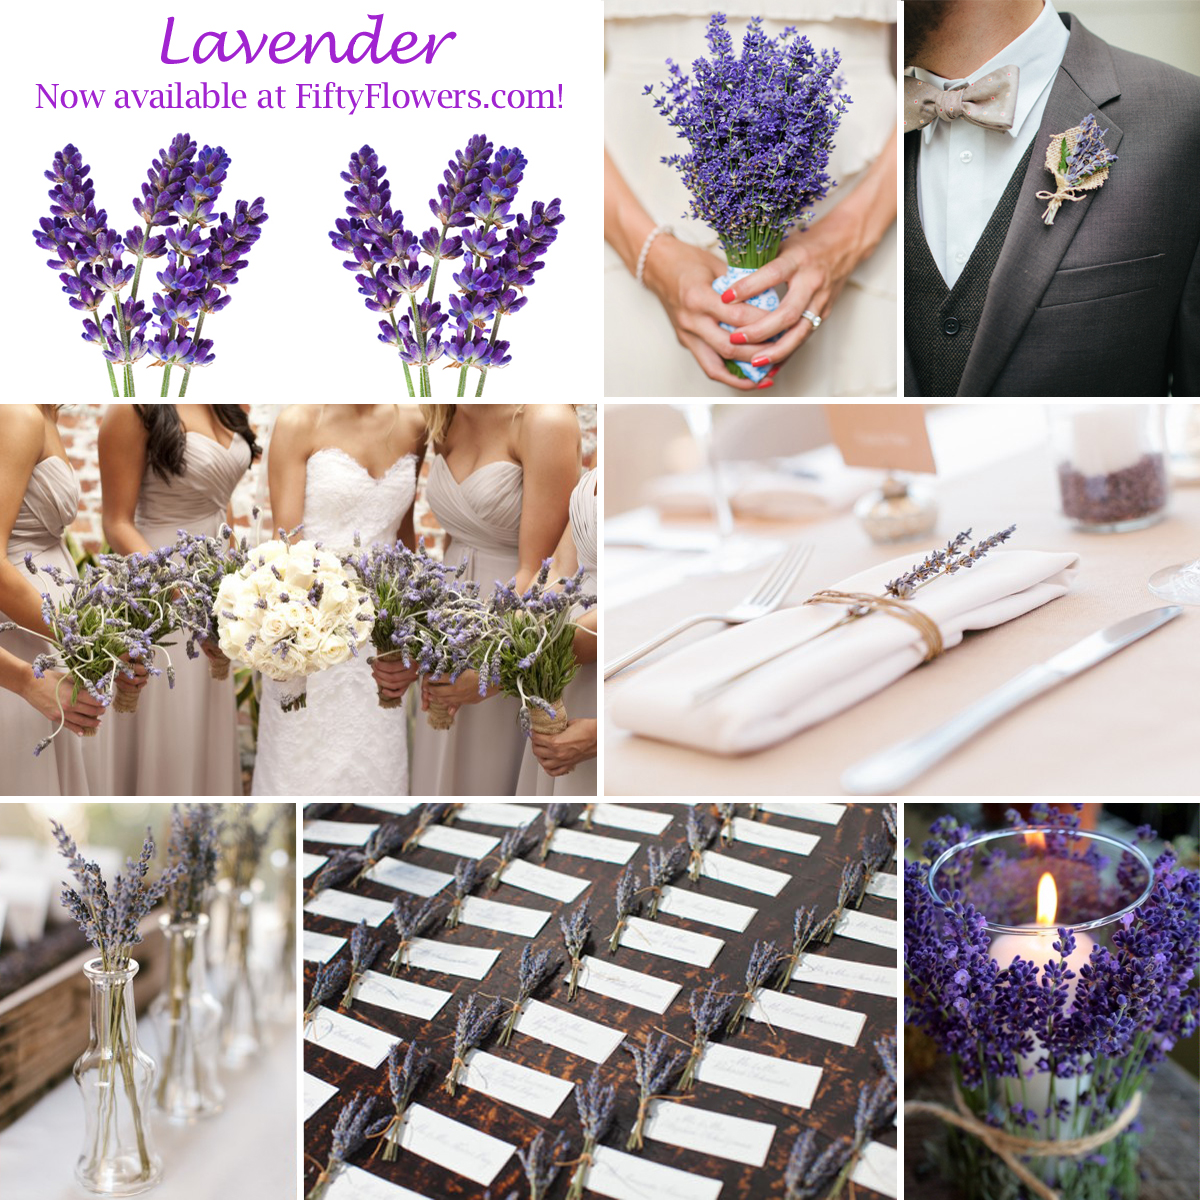 New at fiftyflowers fresh lavender the